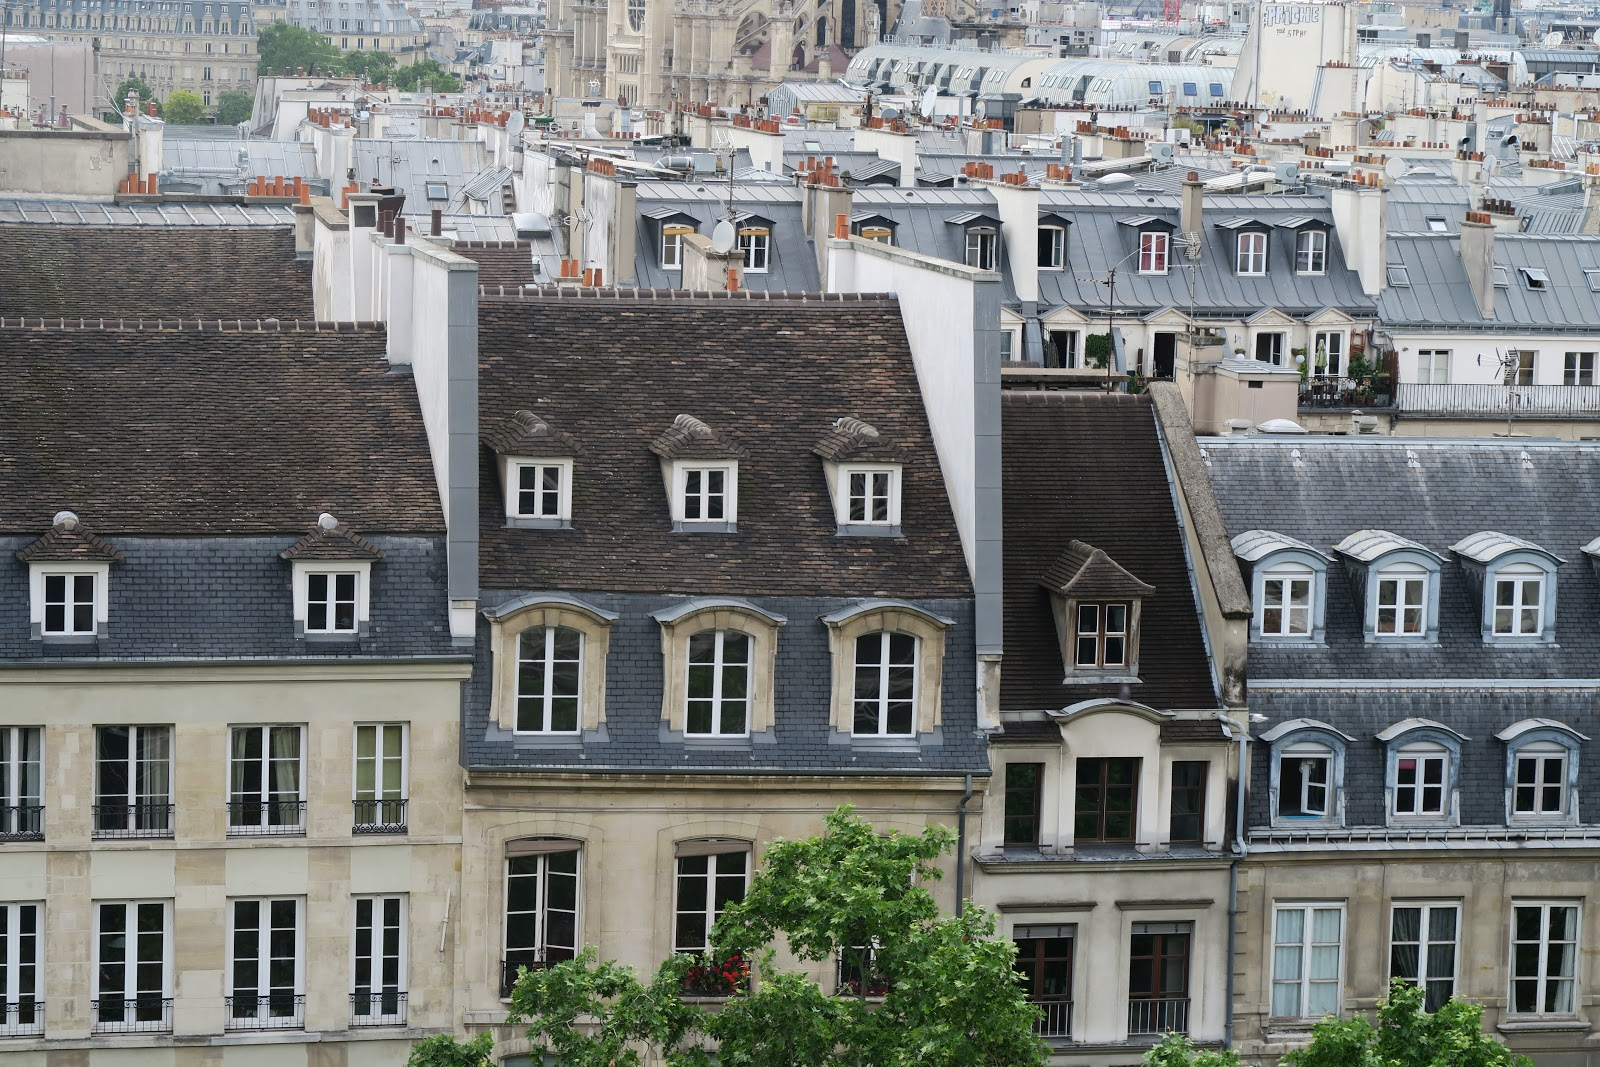 Parisian rooftops from above from our trip to Paris